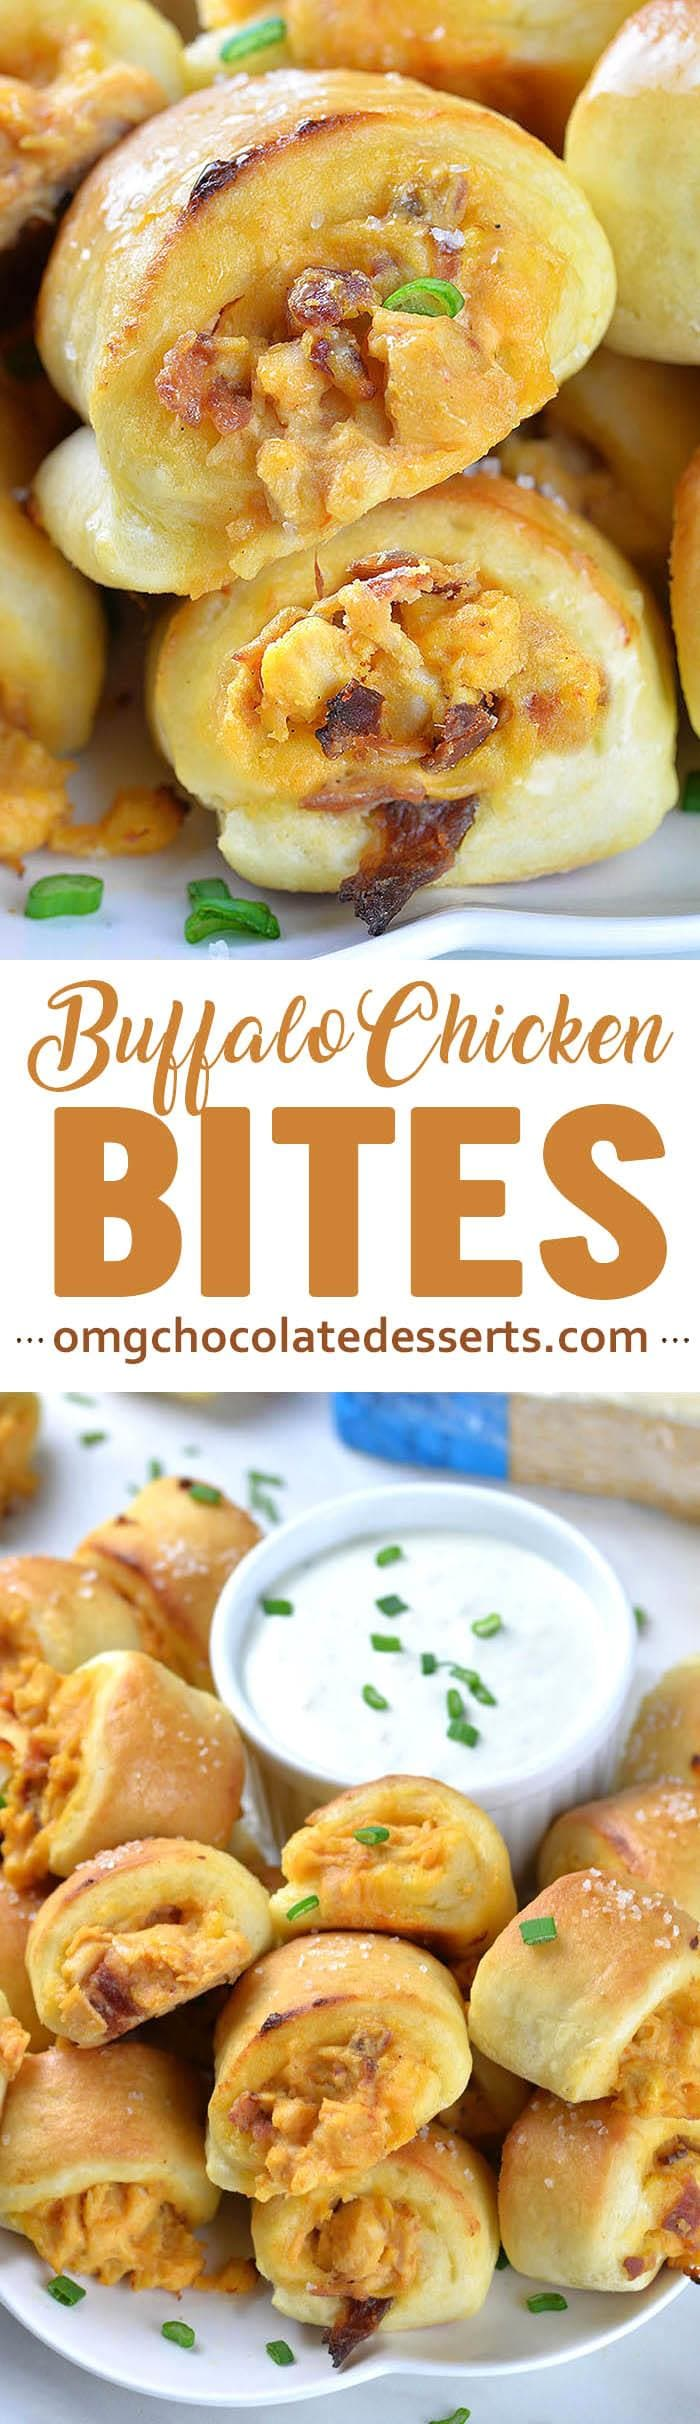 Buffalo Chicken Bites are delicious football snack for all buffalo chicken lovers, especially for those who prefer to enjoy the spicy Buffalo Chicken Wings along with the Blue Cheese Dip.